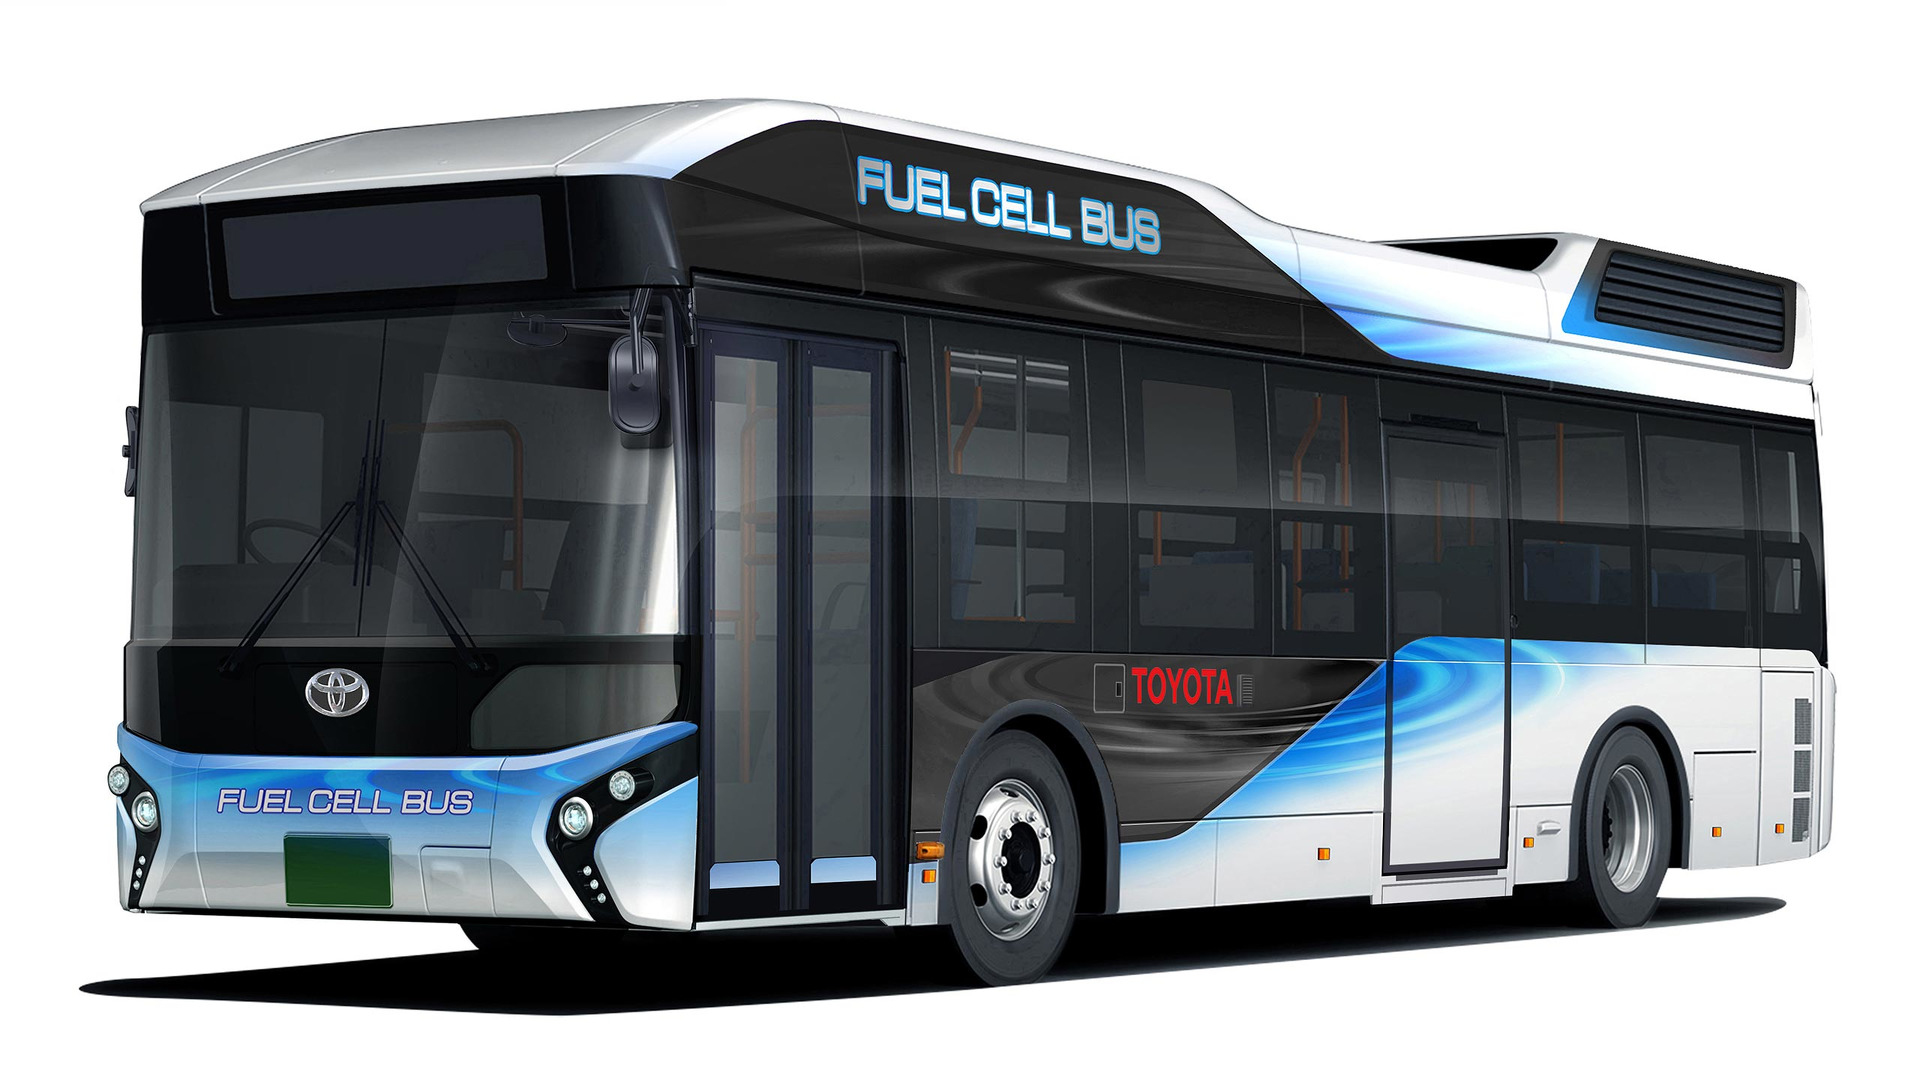 Police Car Website >> Toyota Fuel Cell Bus doubles as emergency power supply, hits the road early 2017